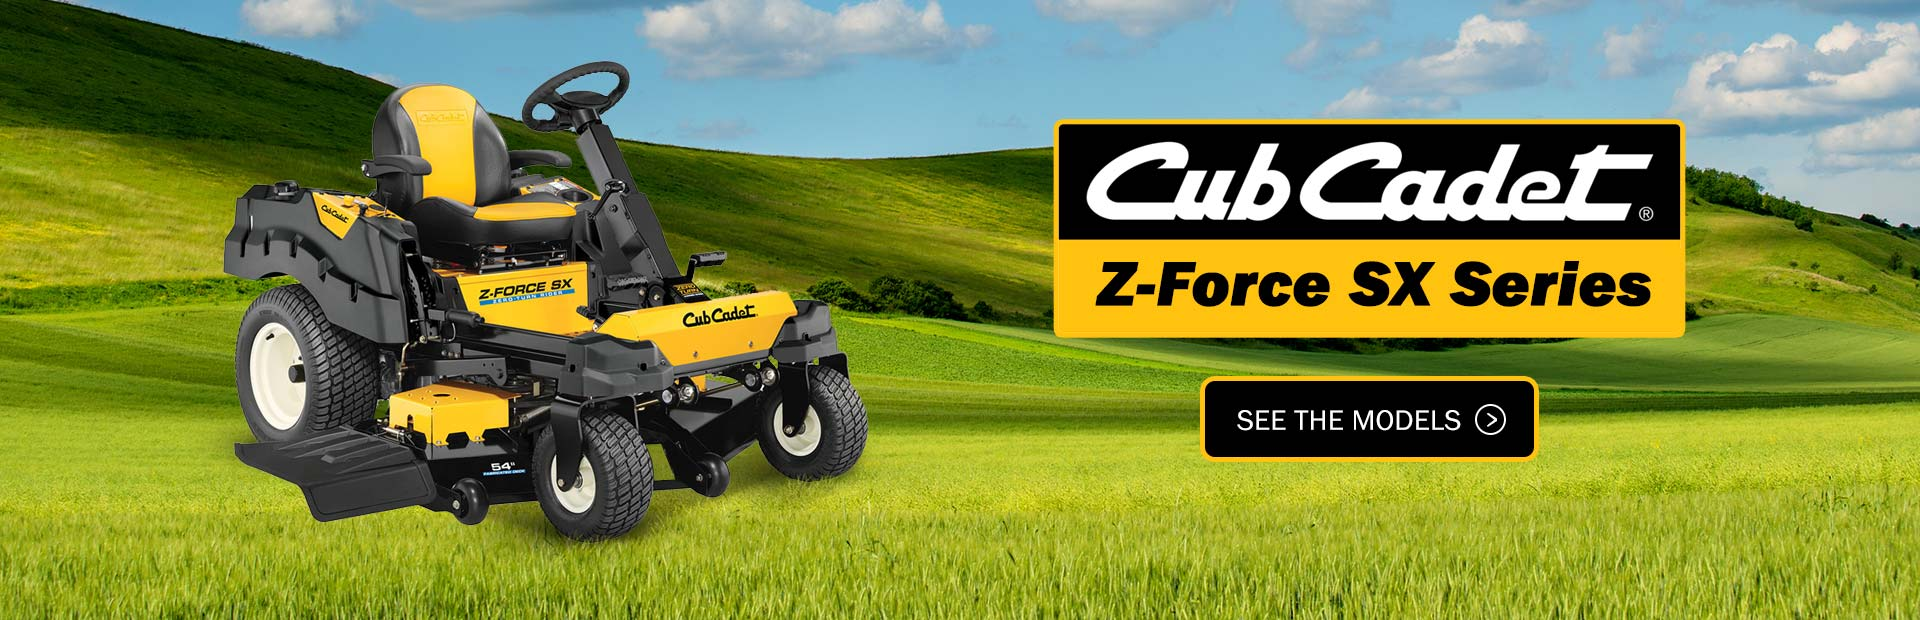 Cub Cadet Z-Force SX Series: Click here to view the models.